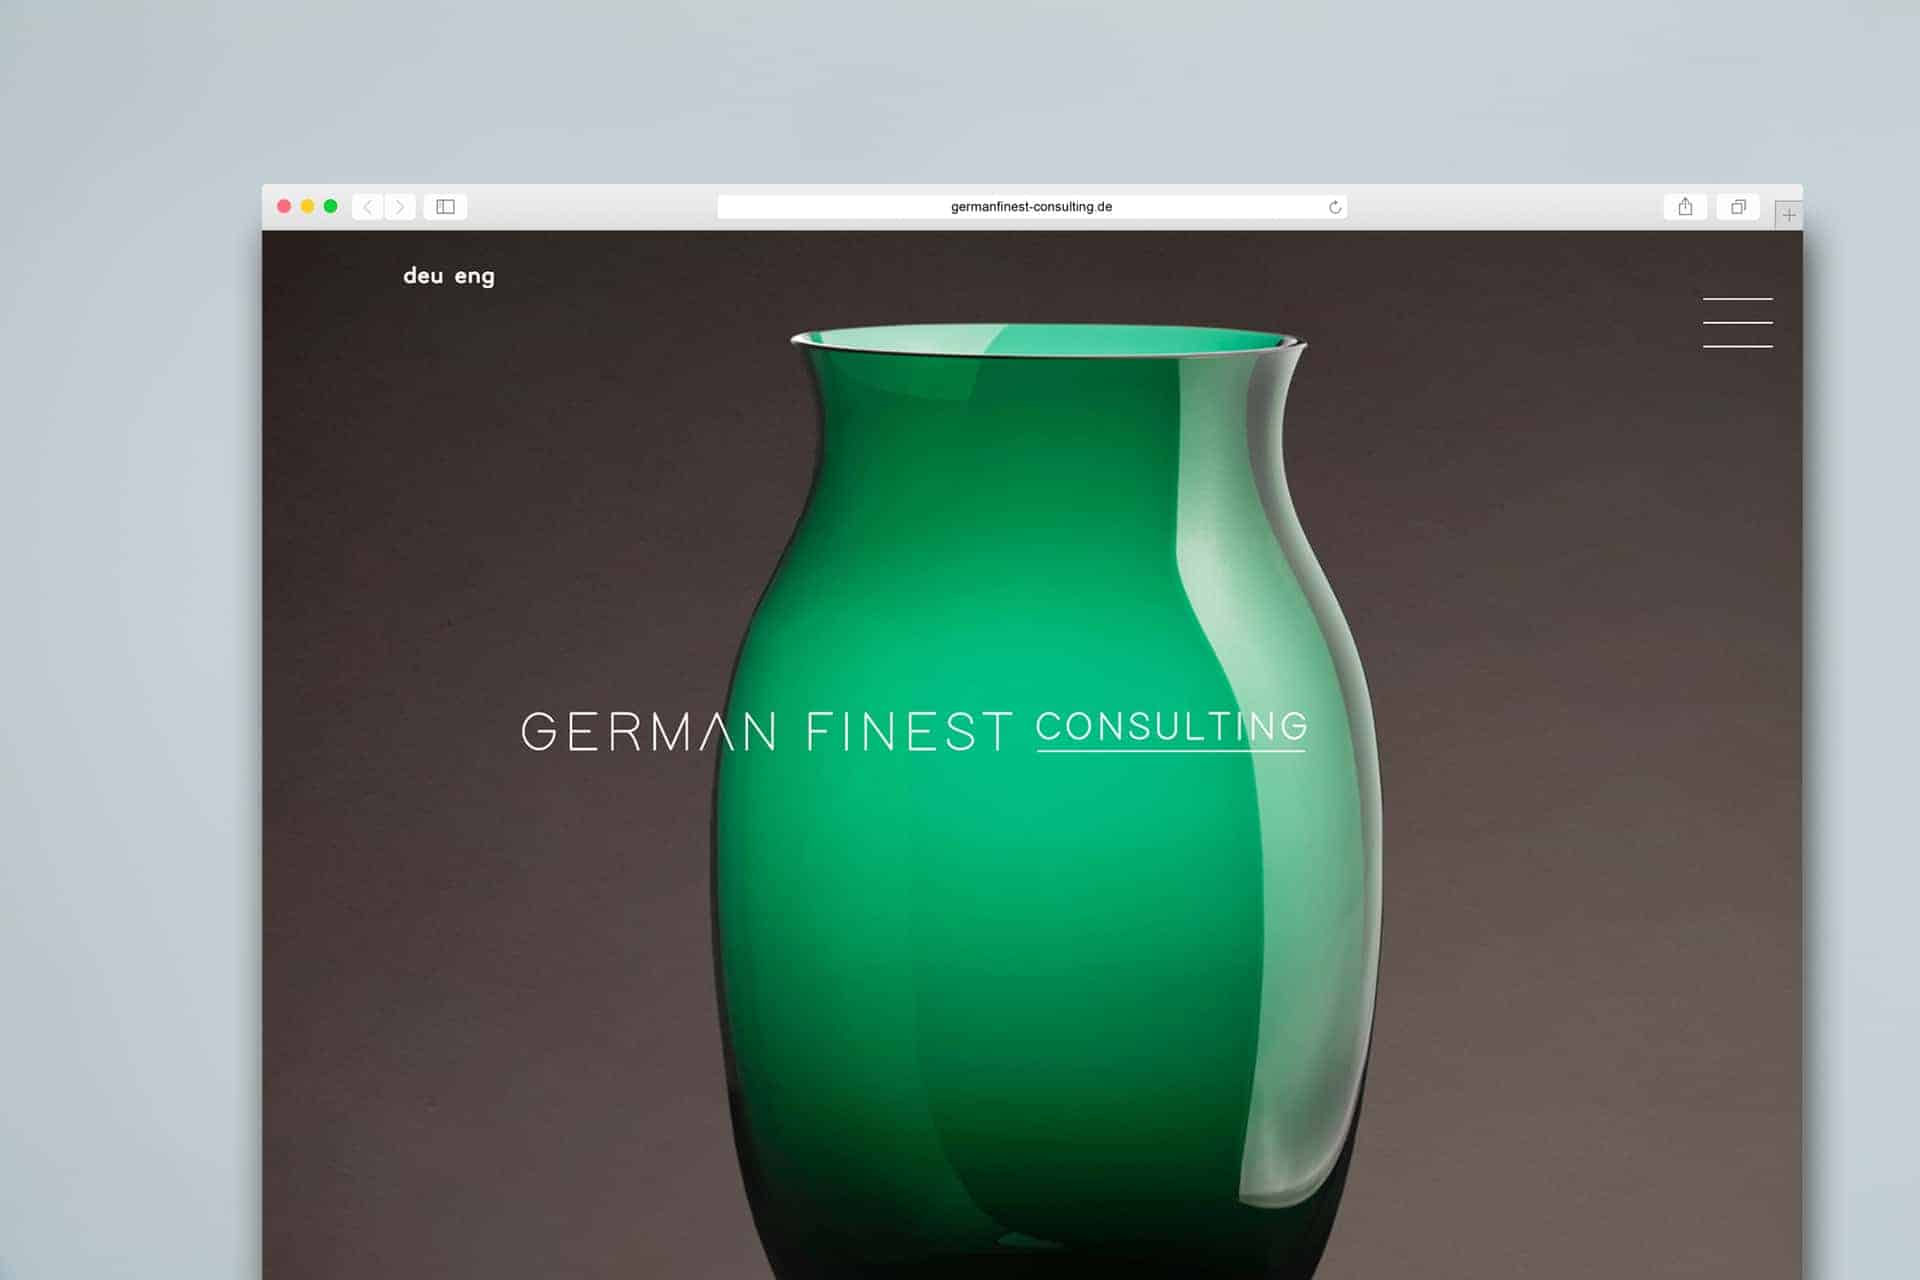 German Finest Consulting